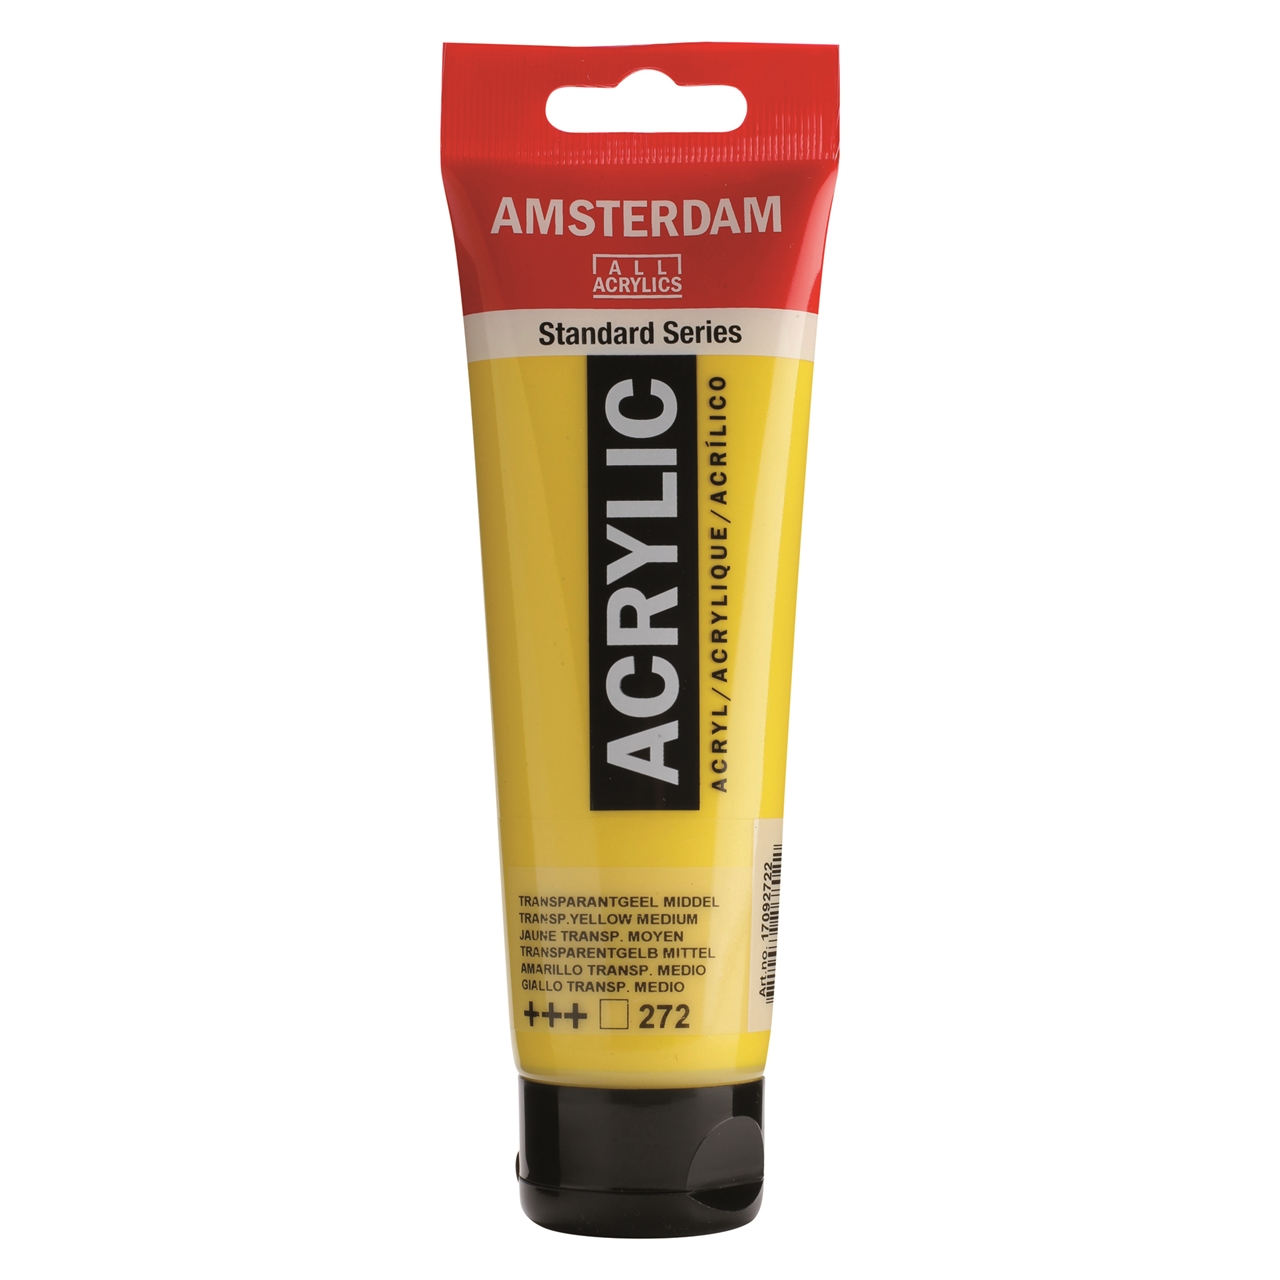 Akrüülvärv Amsterdam 120ml, 282 naples yellow green